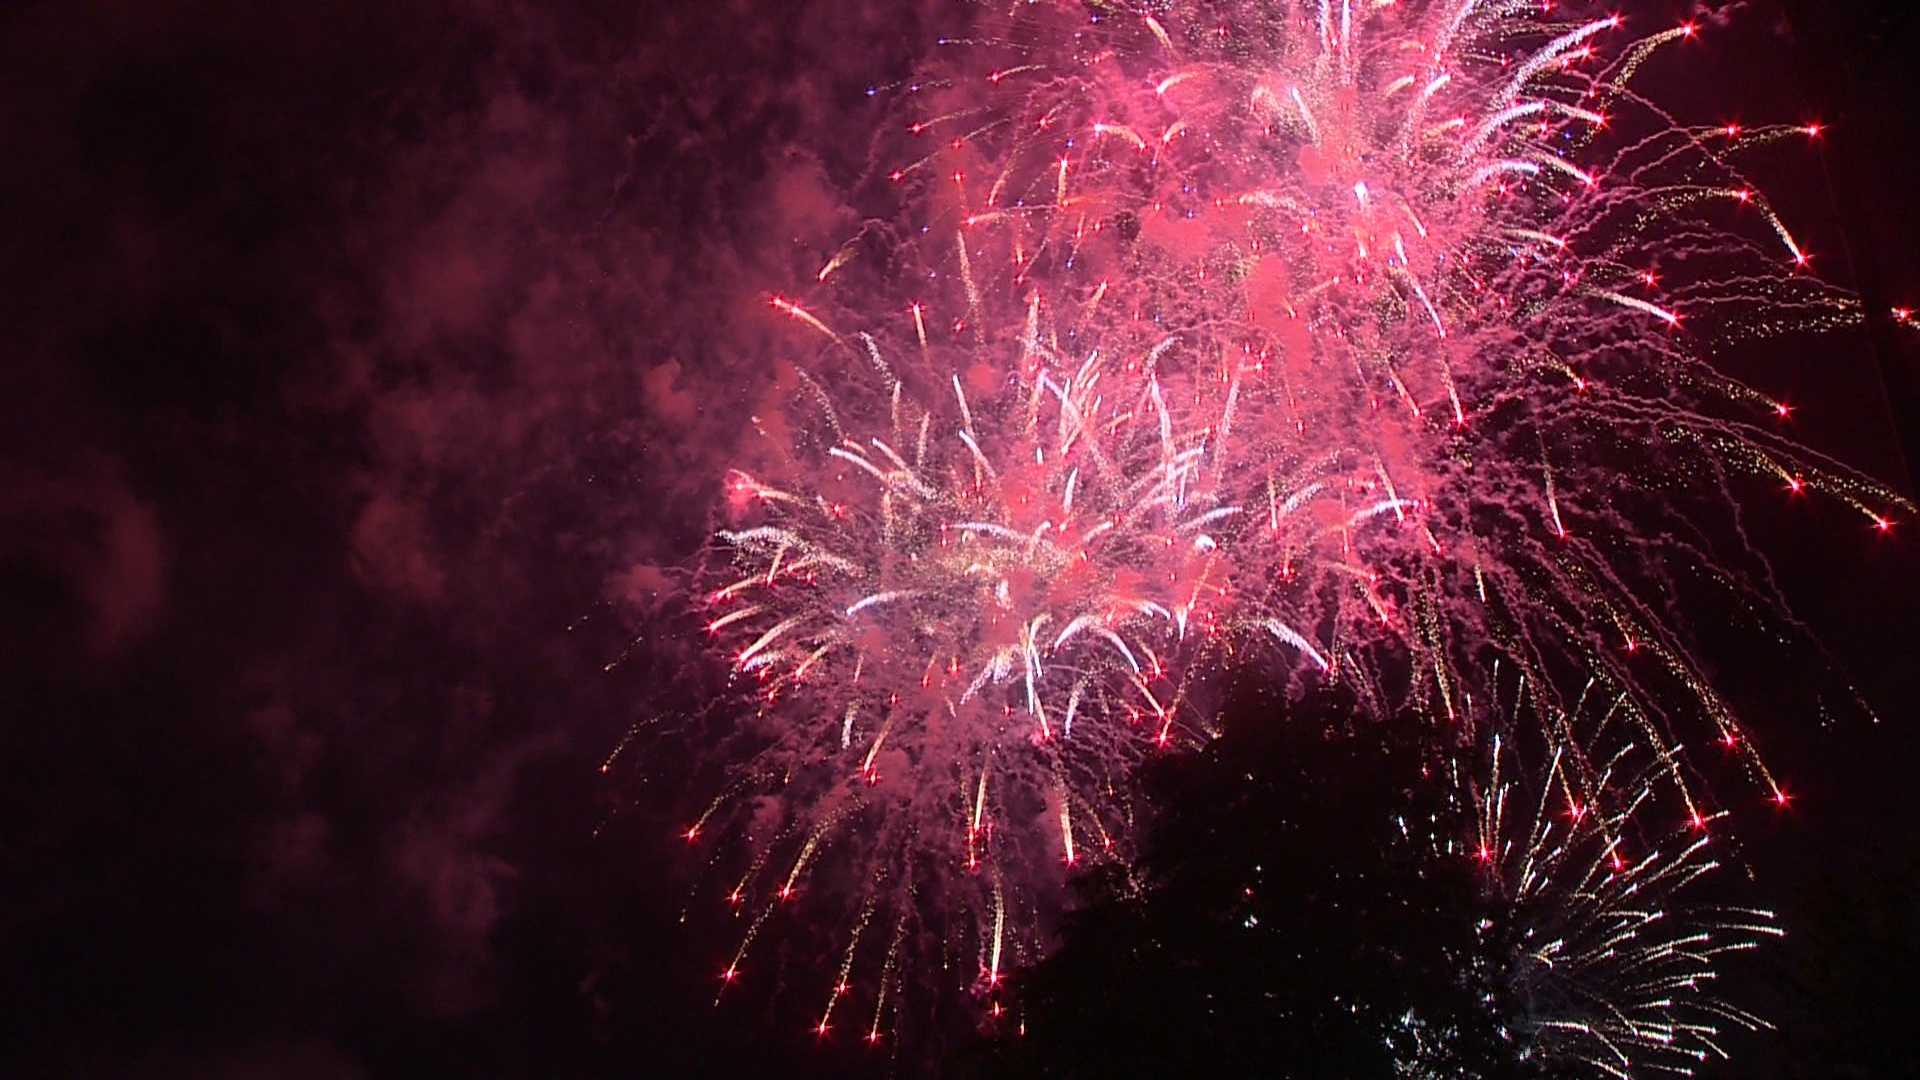 Boston's annual fireworks spectacular on the Charles River.